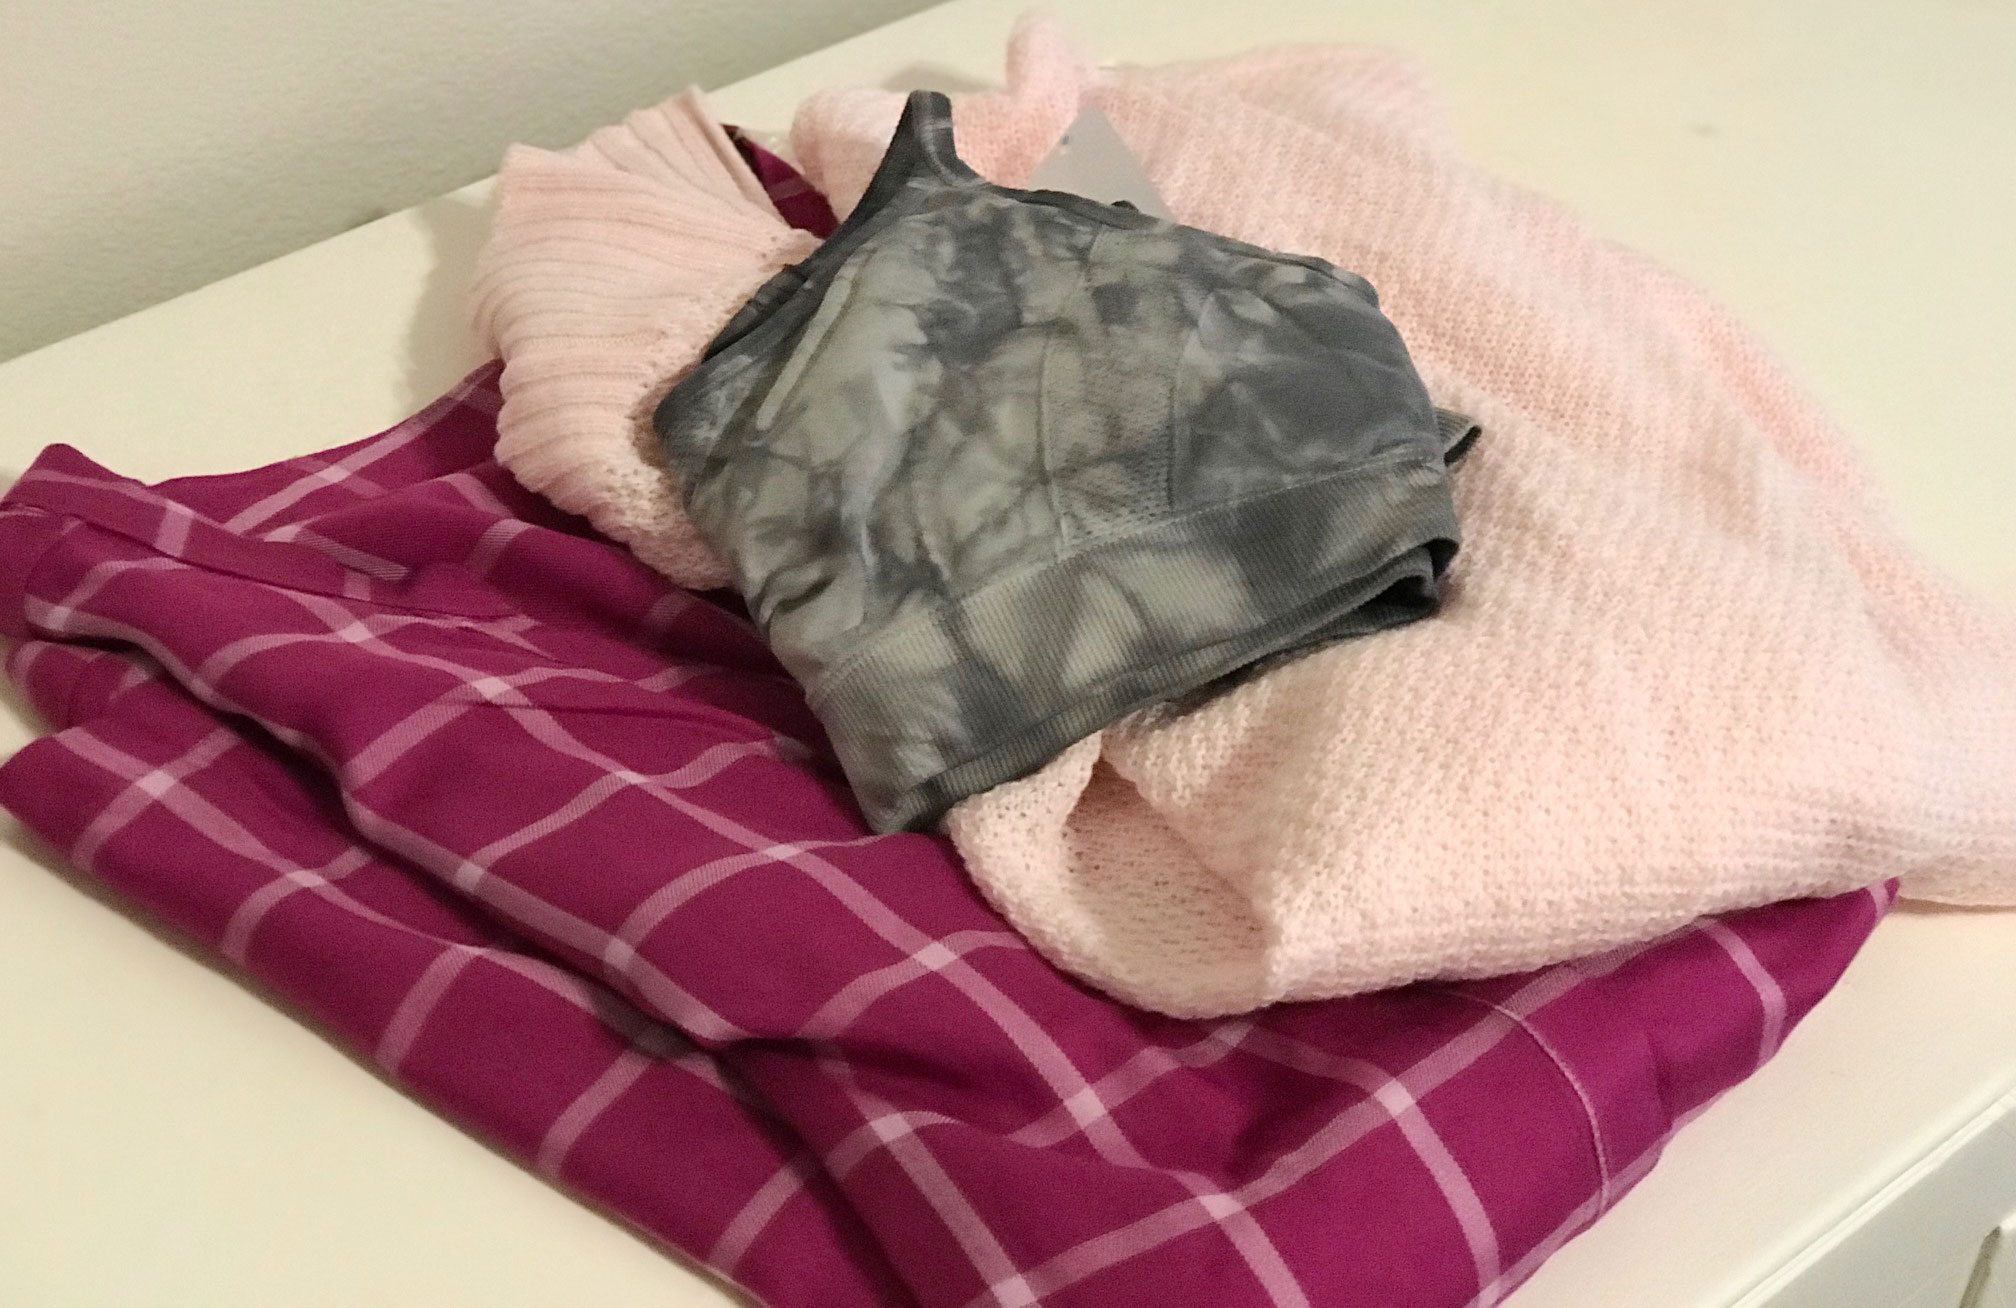 three pieces of clothing on a table